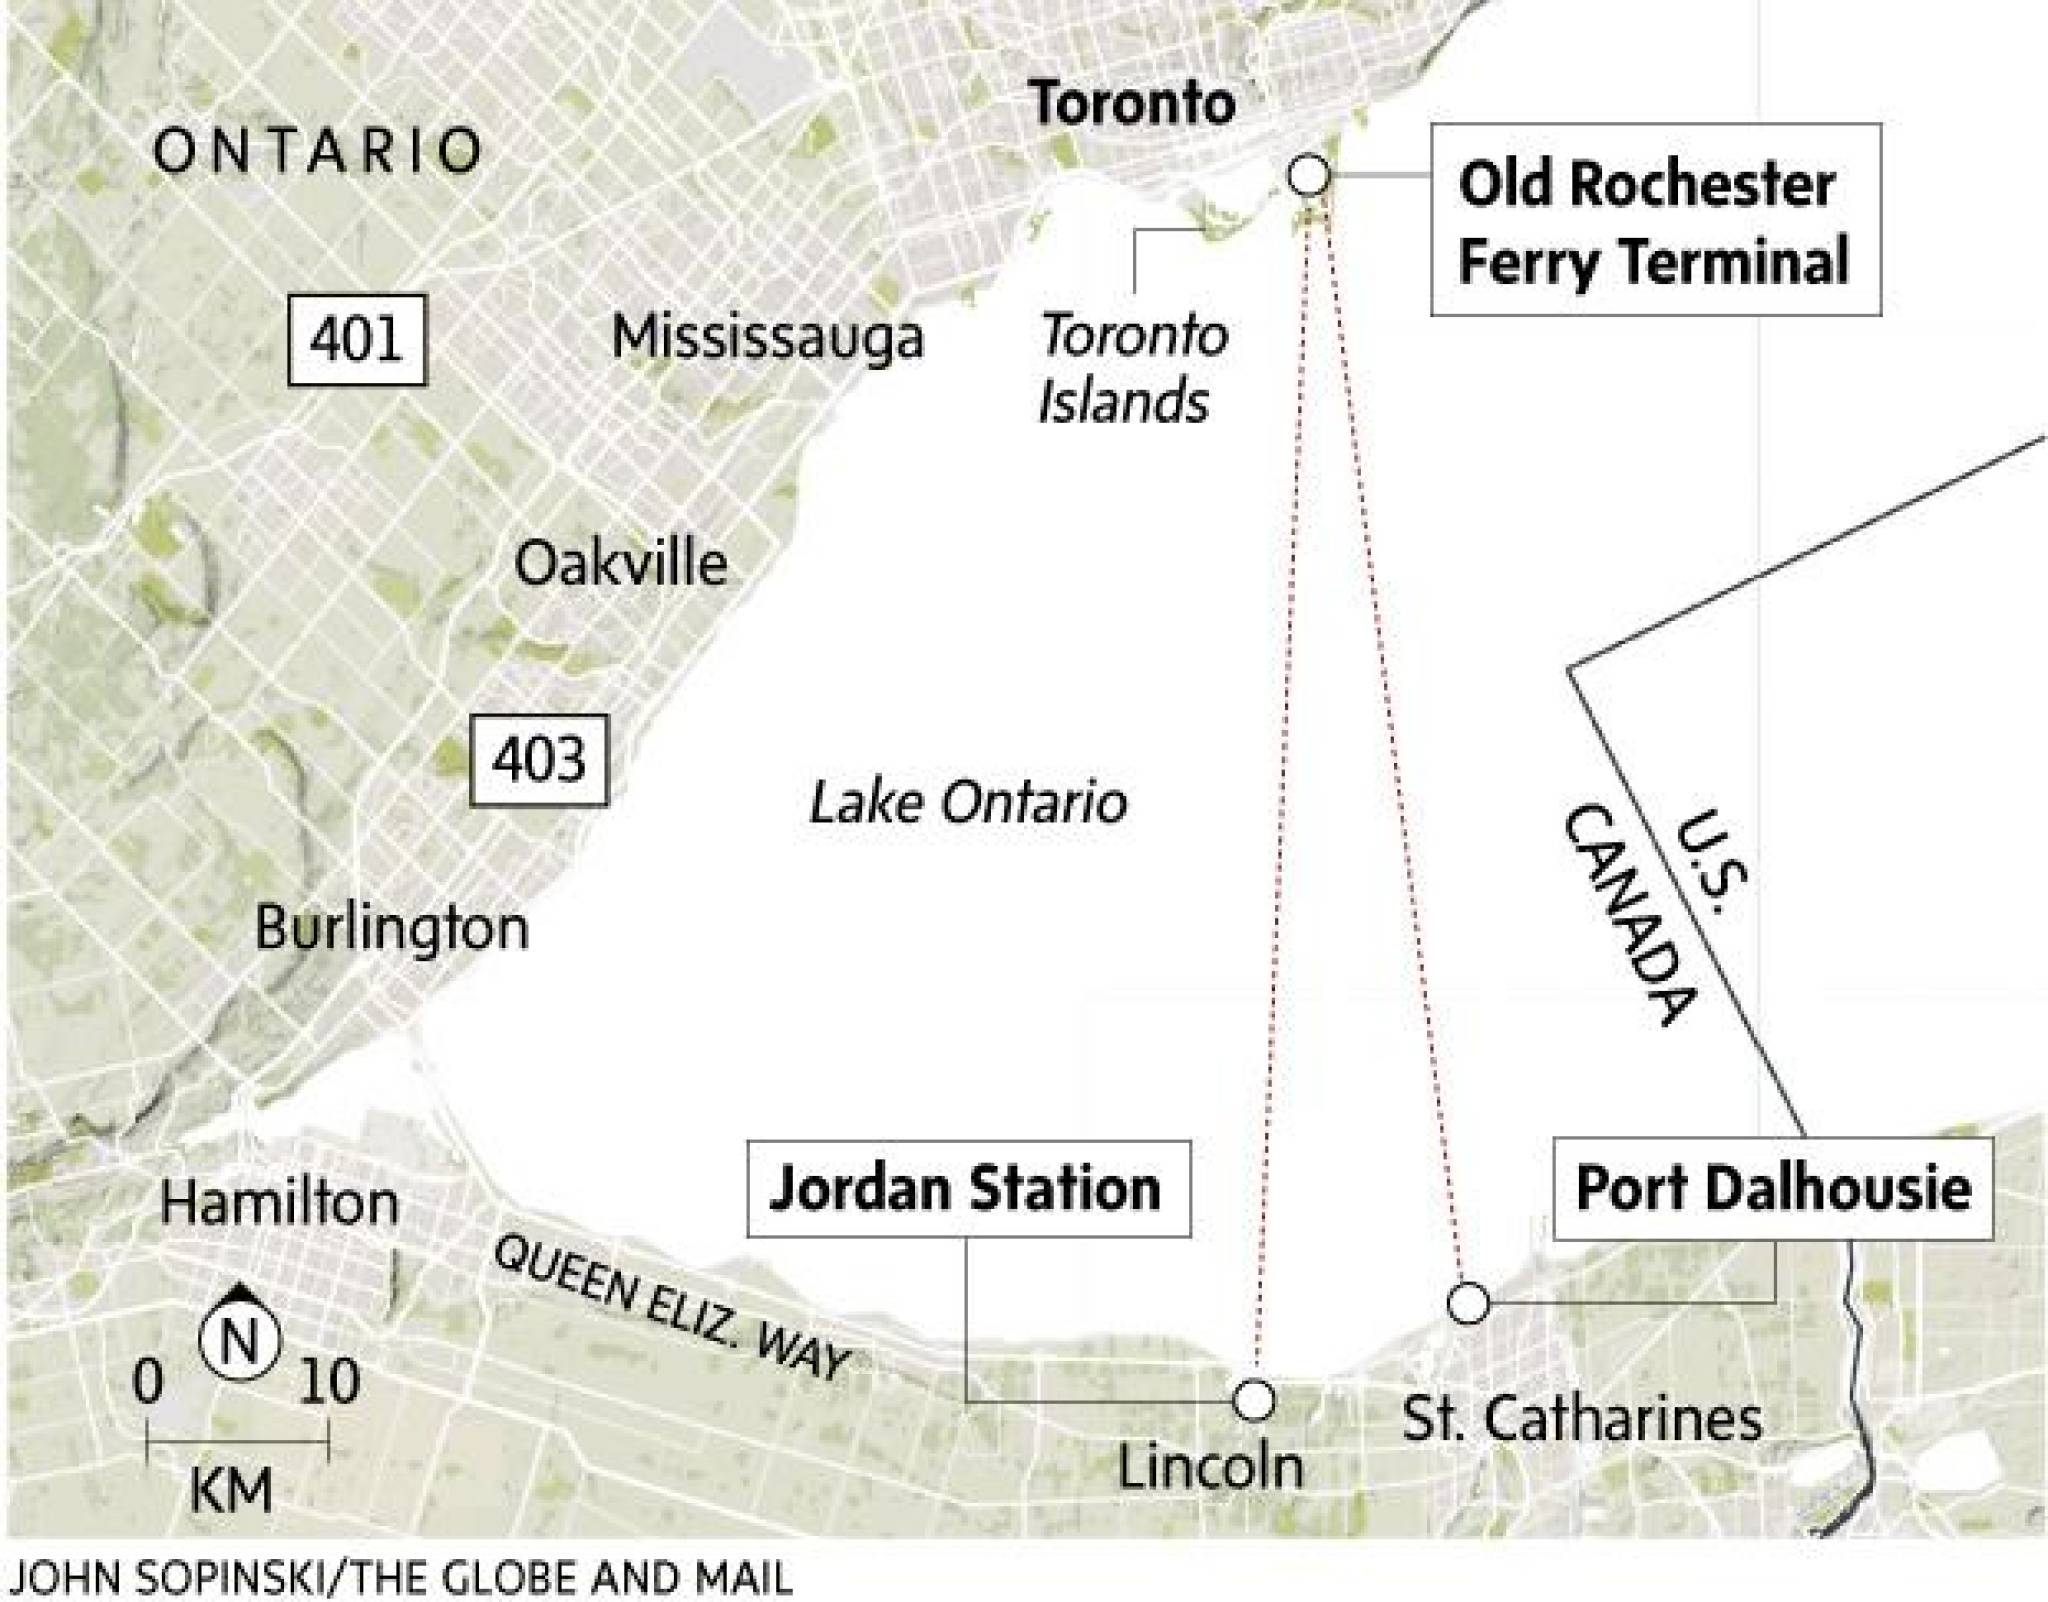 How A Yearold Is Hoping To Link The GTA Through Waterbased - How the globe and maps help us